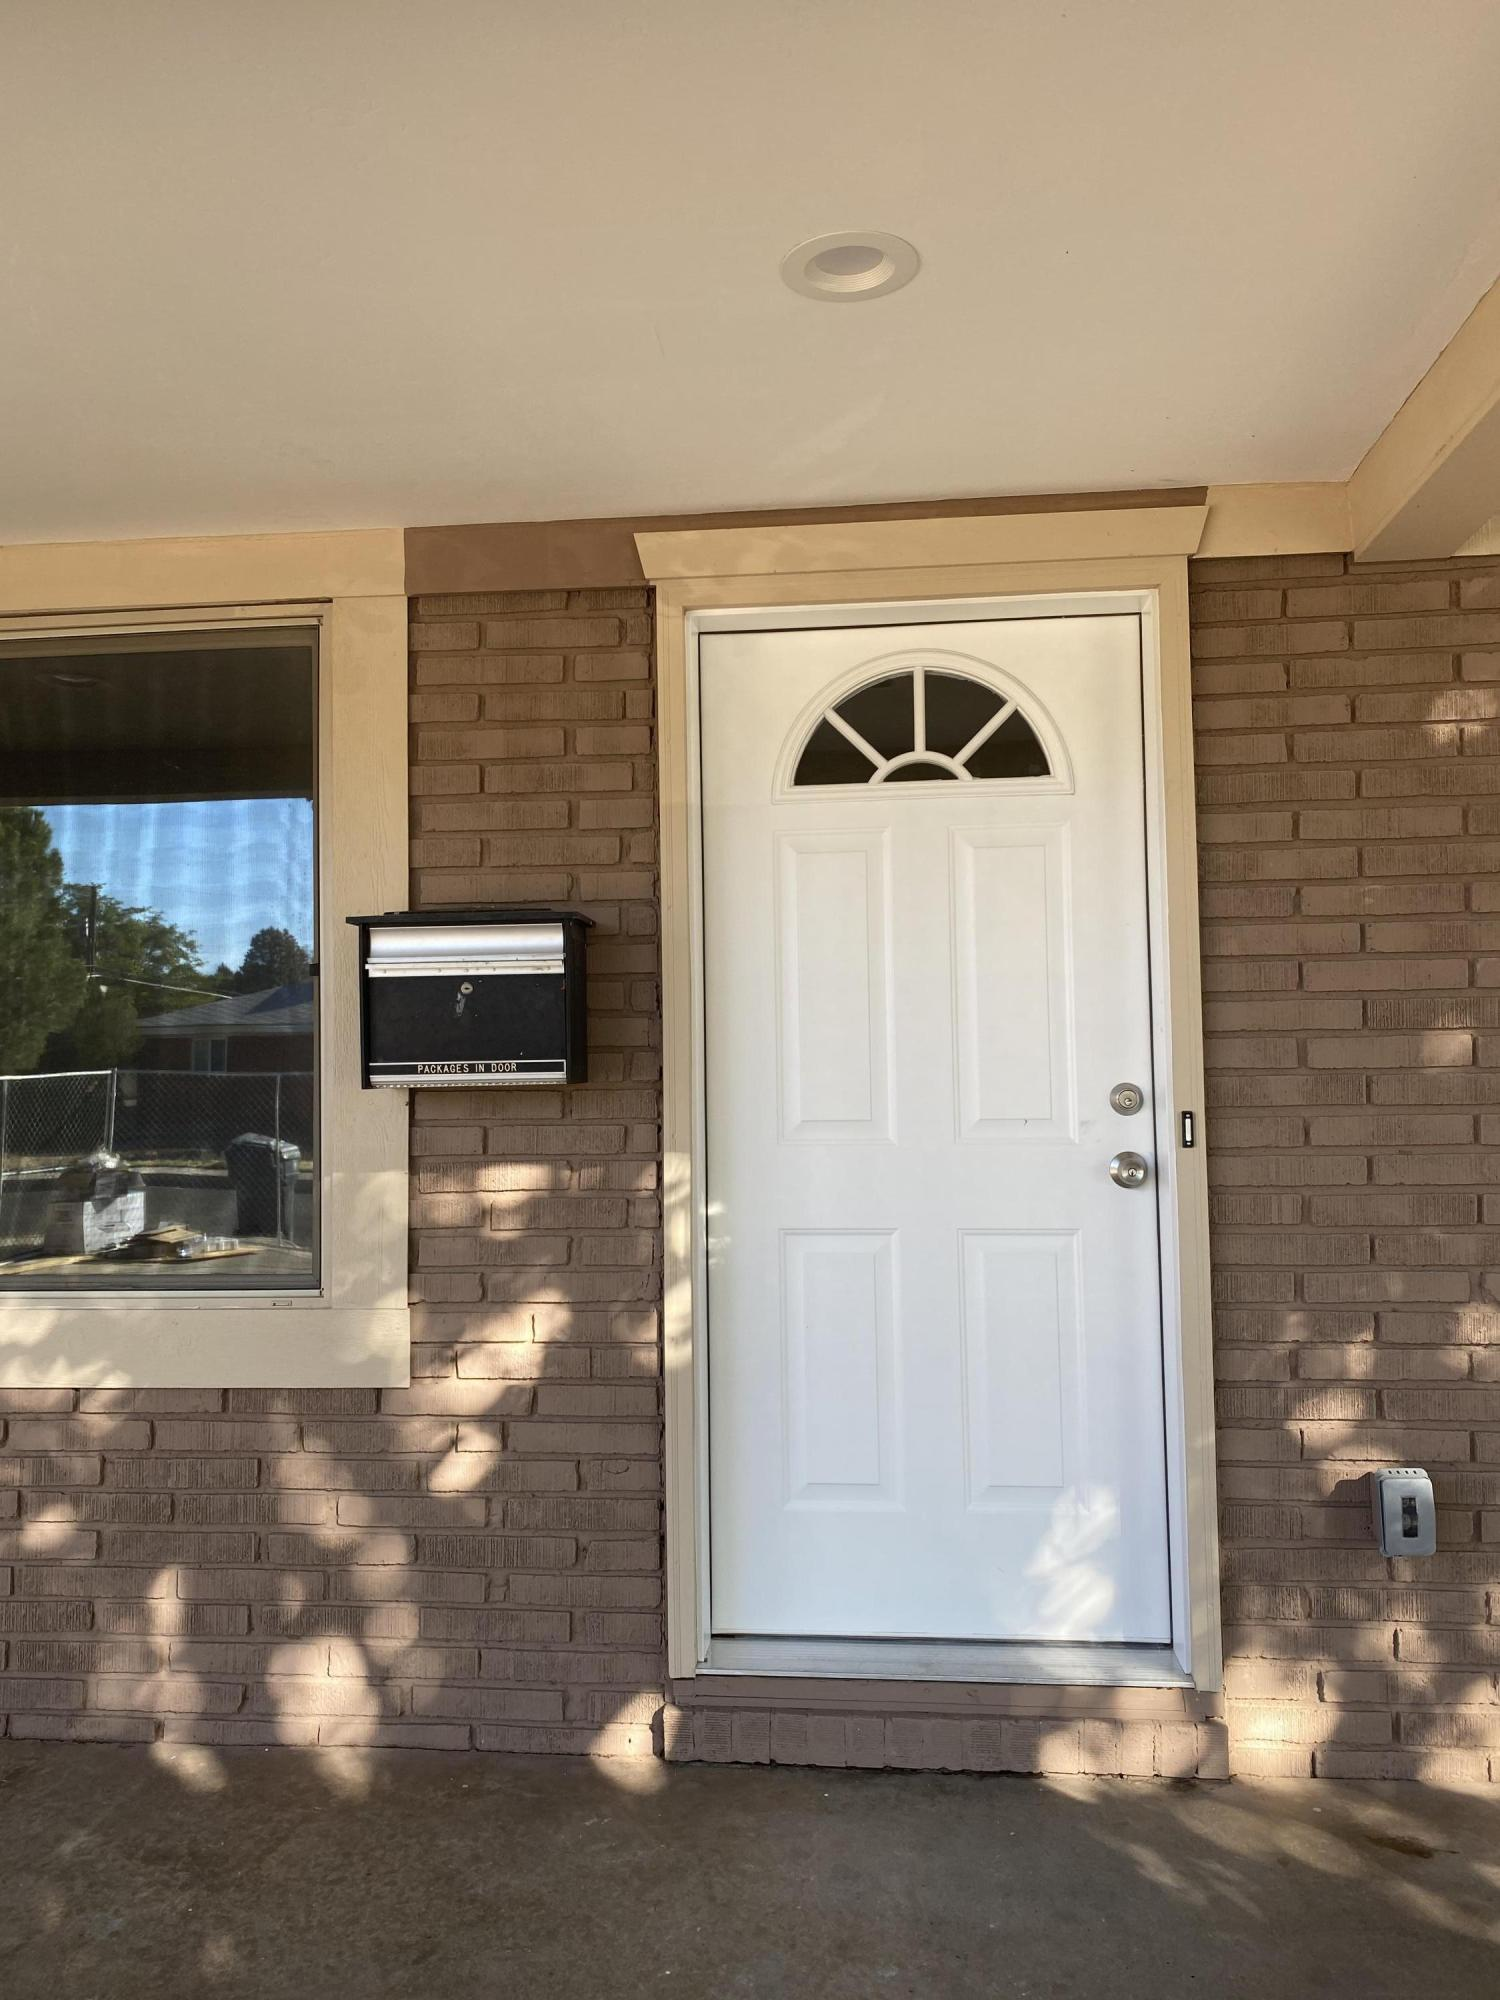 Prestine remodel. New roof and new Combo refrigerated AC and Heater. New water heater. New paint and laminated floors. Move-in ready. Updated bathrooms and kitchen. New stainless steel appliances. Close to KAFB. No seller disclosure. Will provide list of improvements